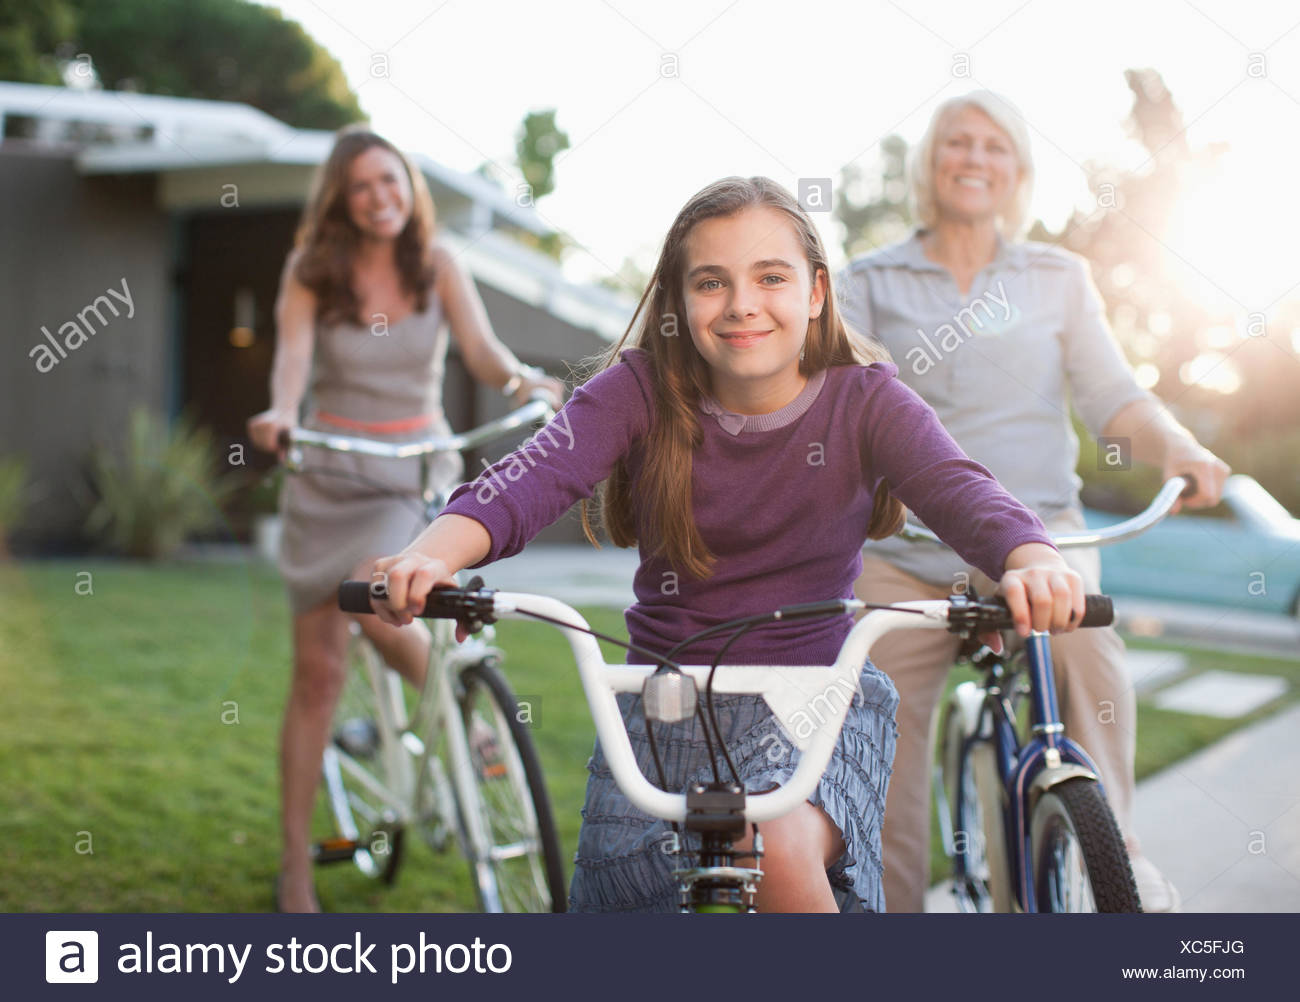 Three generations of women riding bicycles - Stock Image